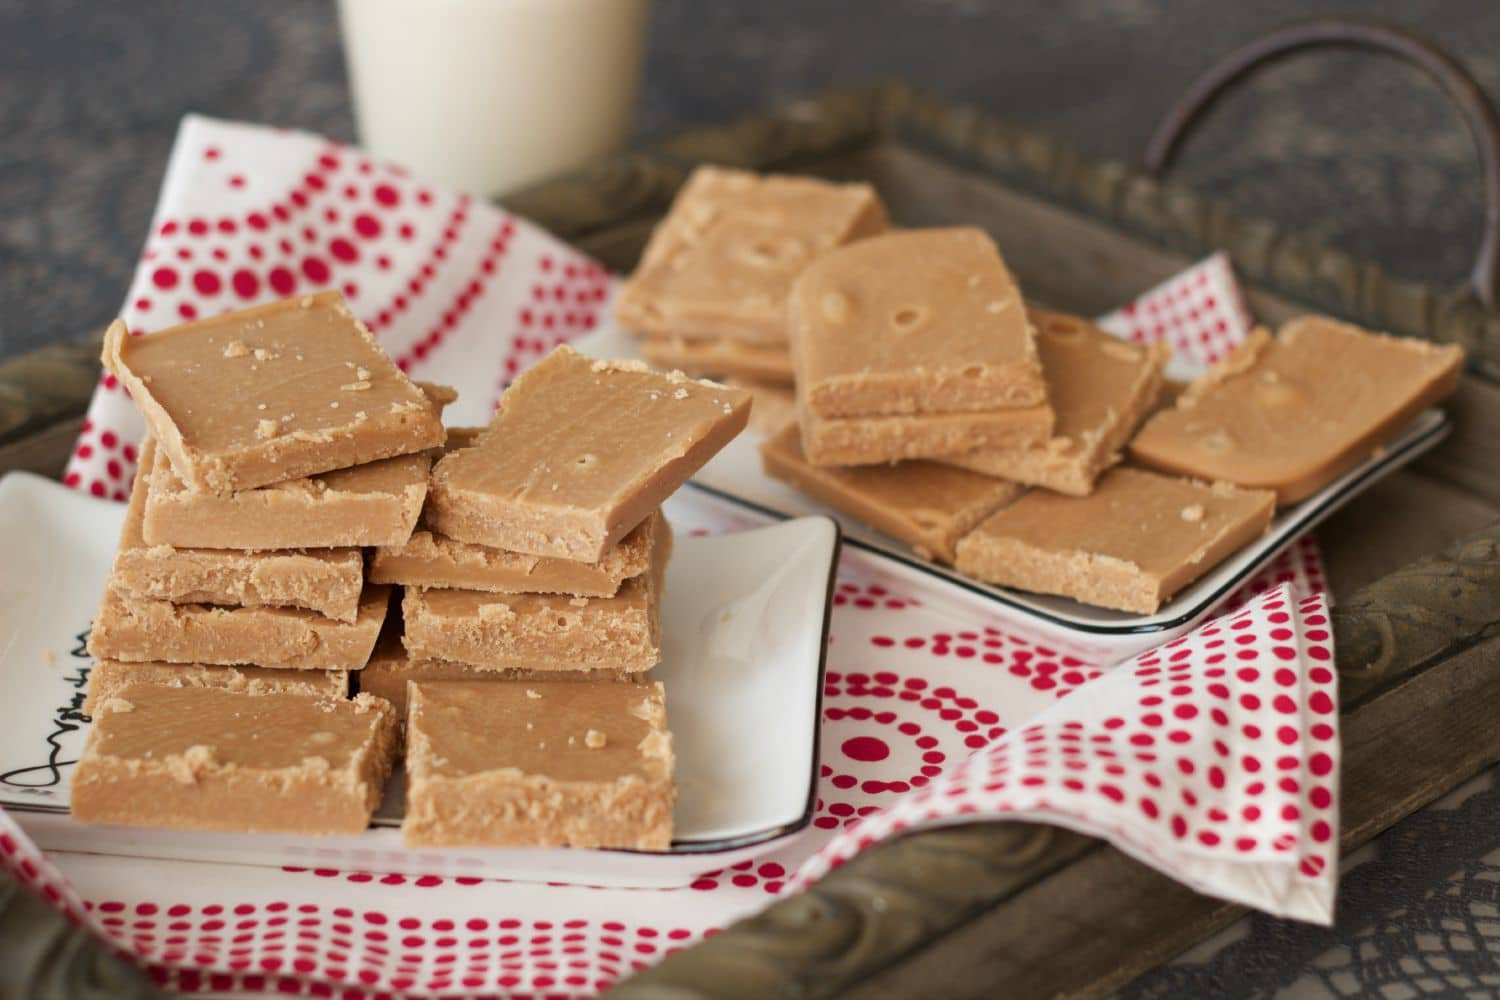 Vegan Fudge - Traditional condensed milk fudge recipe made vegan! Sweet, velvety and melt-in-the-mouth deliciousness! #vegan #dairy-free #gluten-free